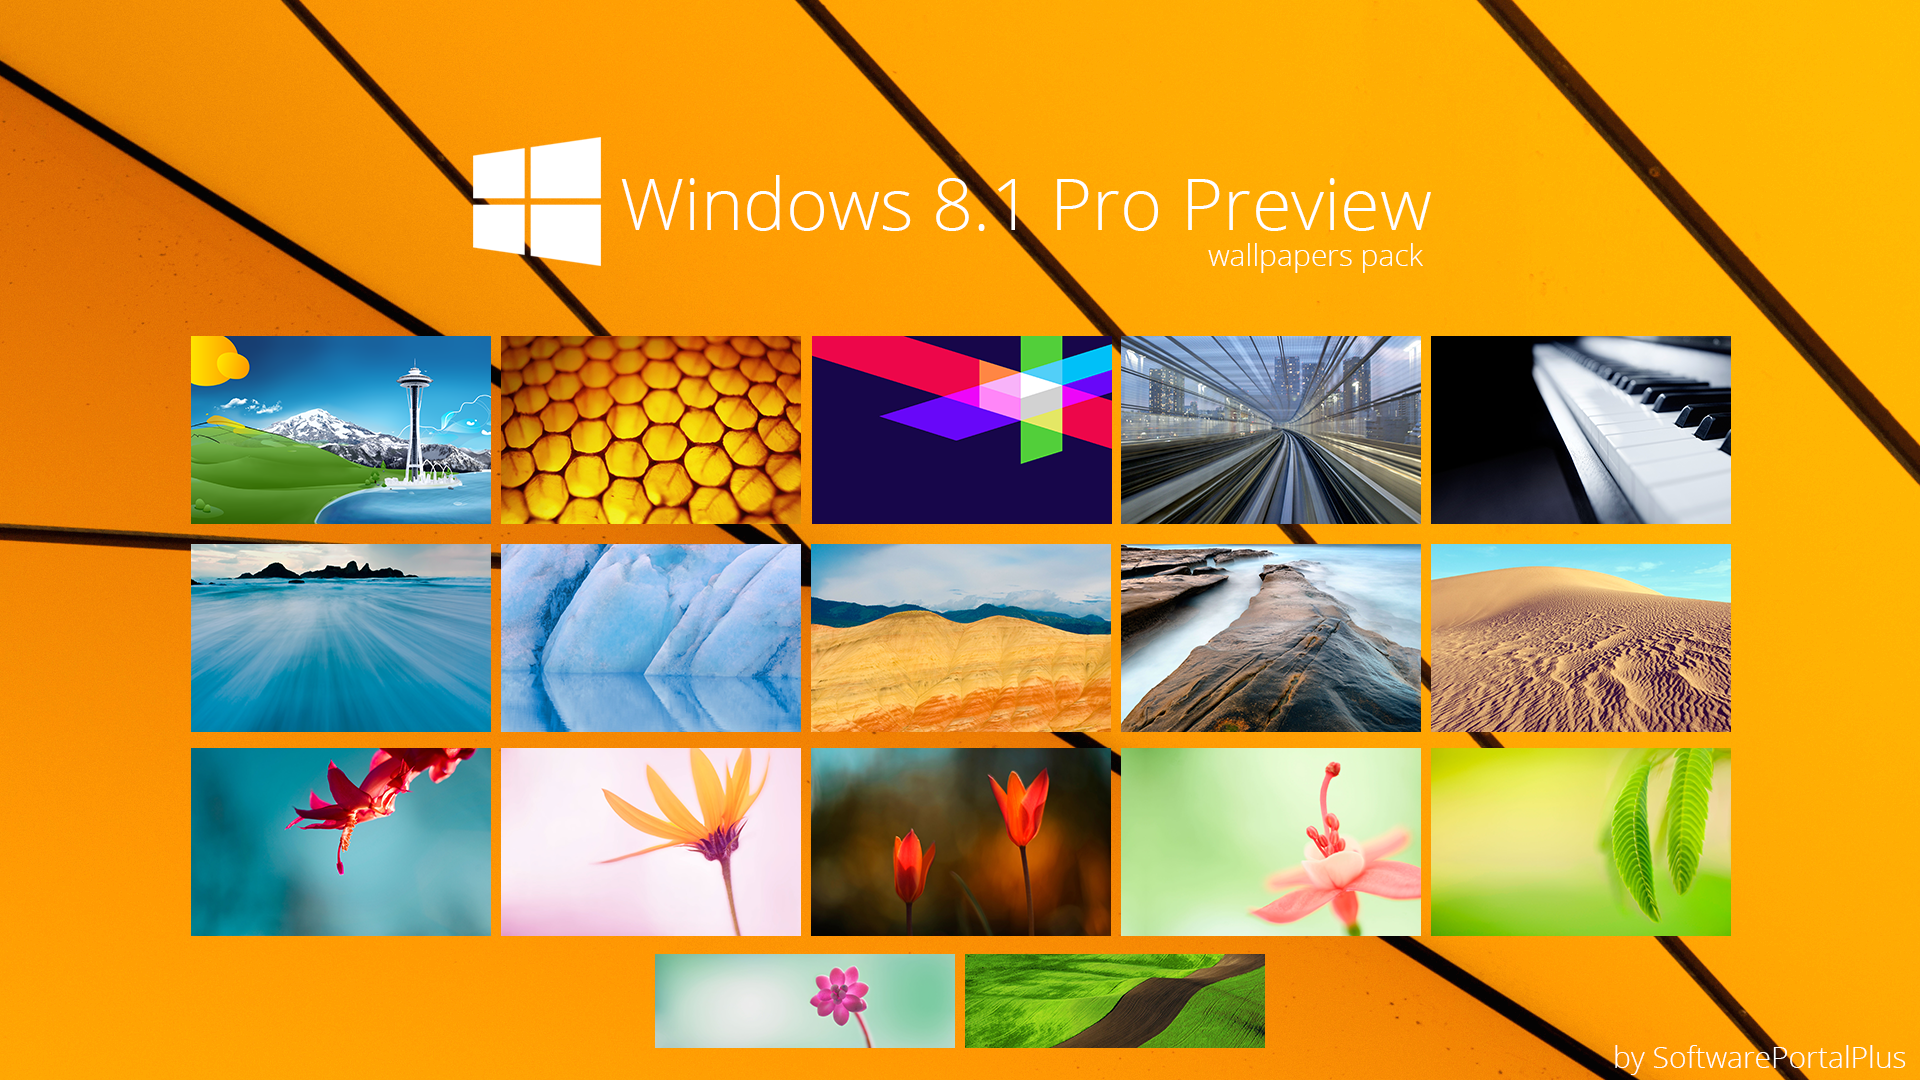 Windows 8 1 Wallpaper Downloads: Windows 8.1 Pro Proview : Wallpapers Pack By